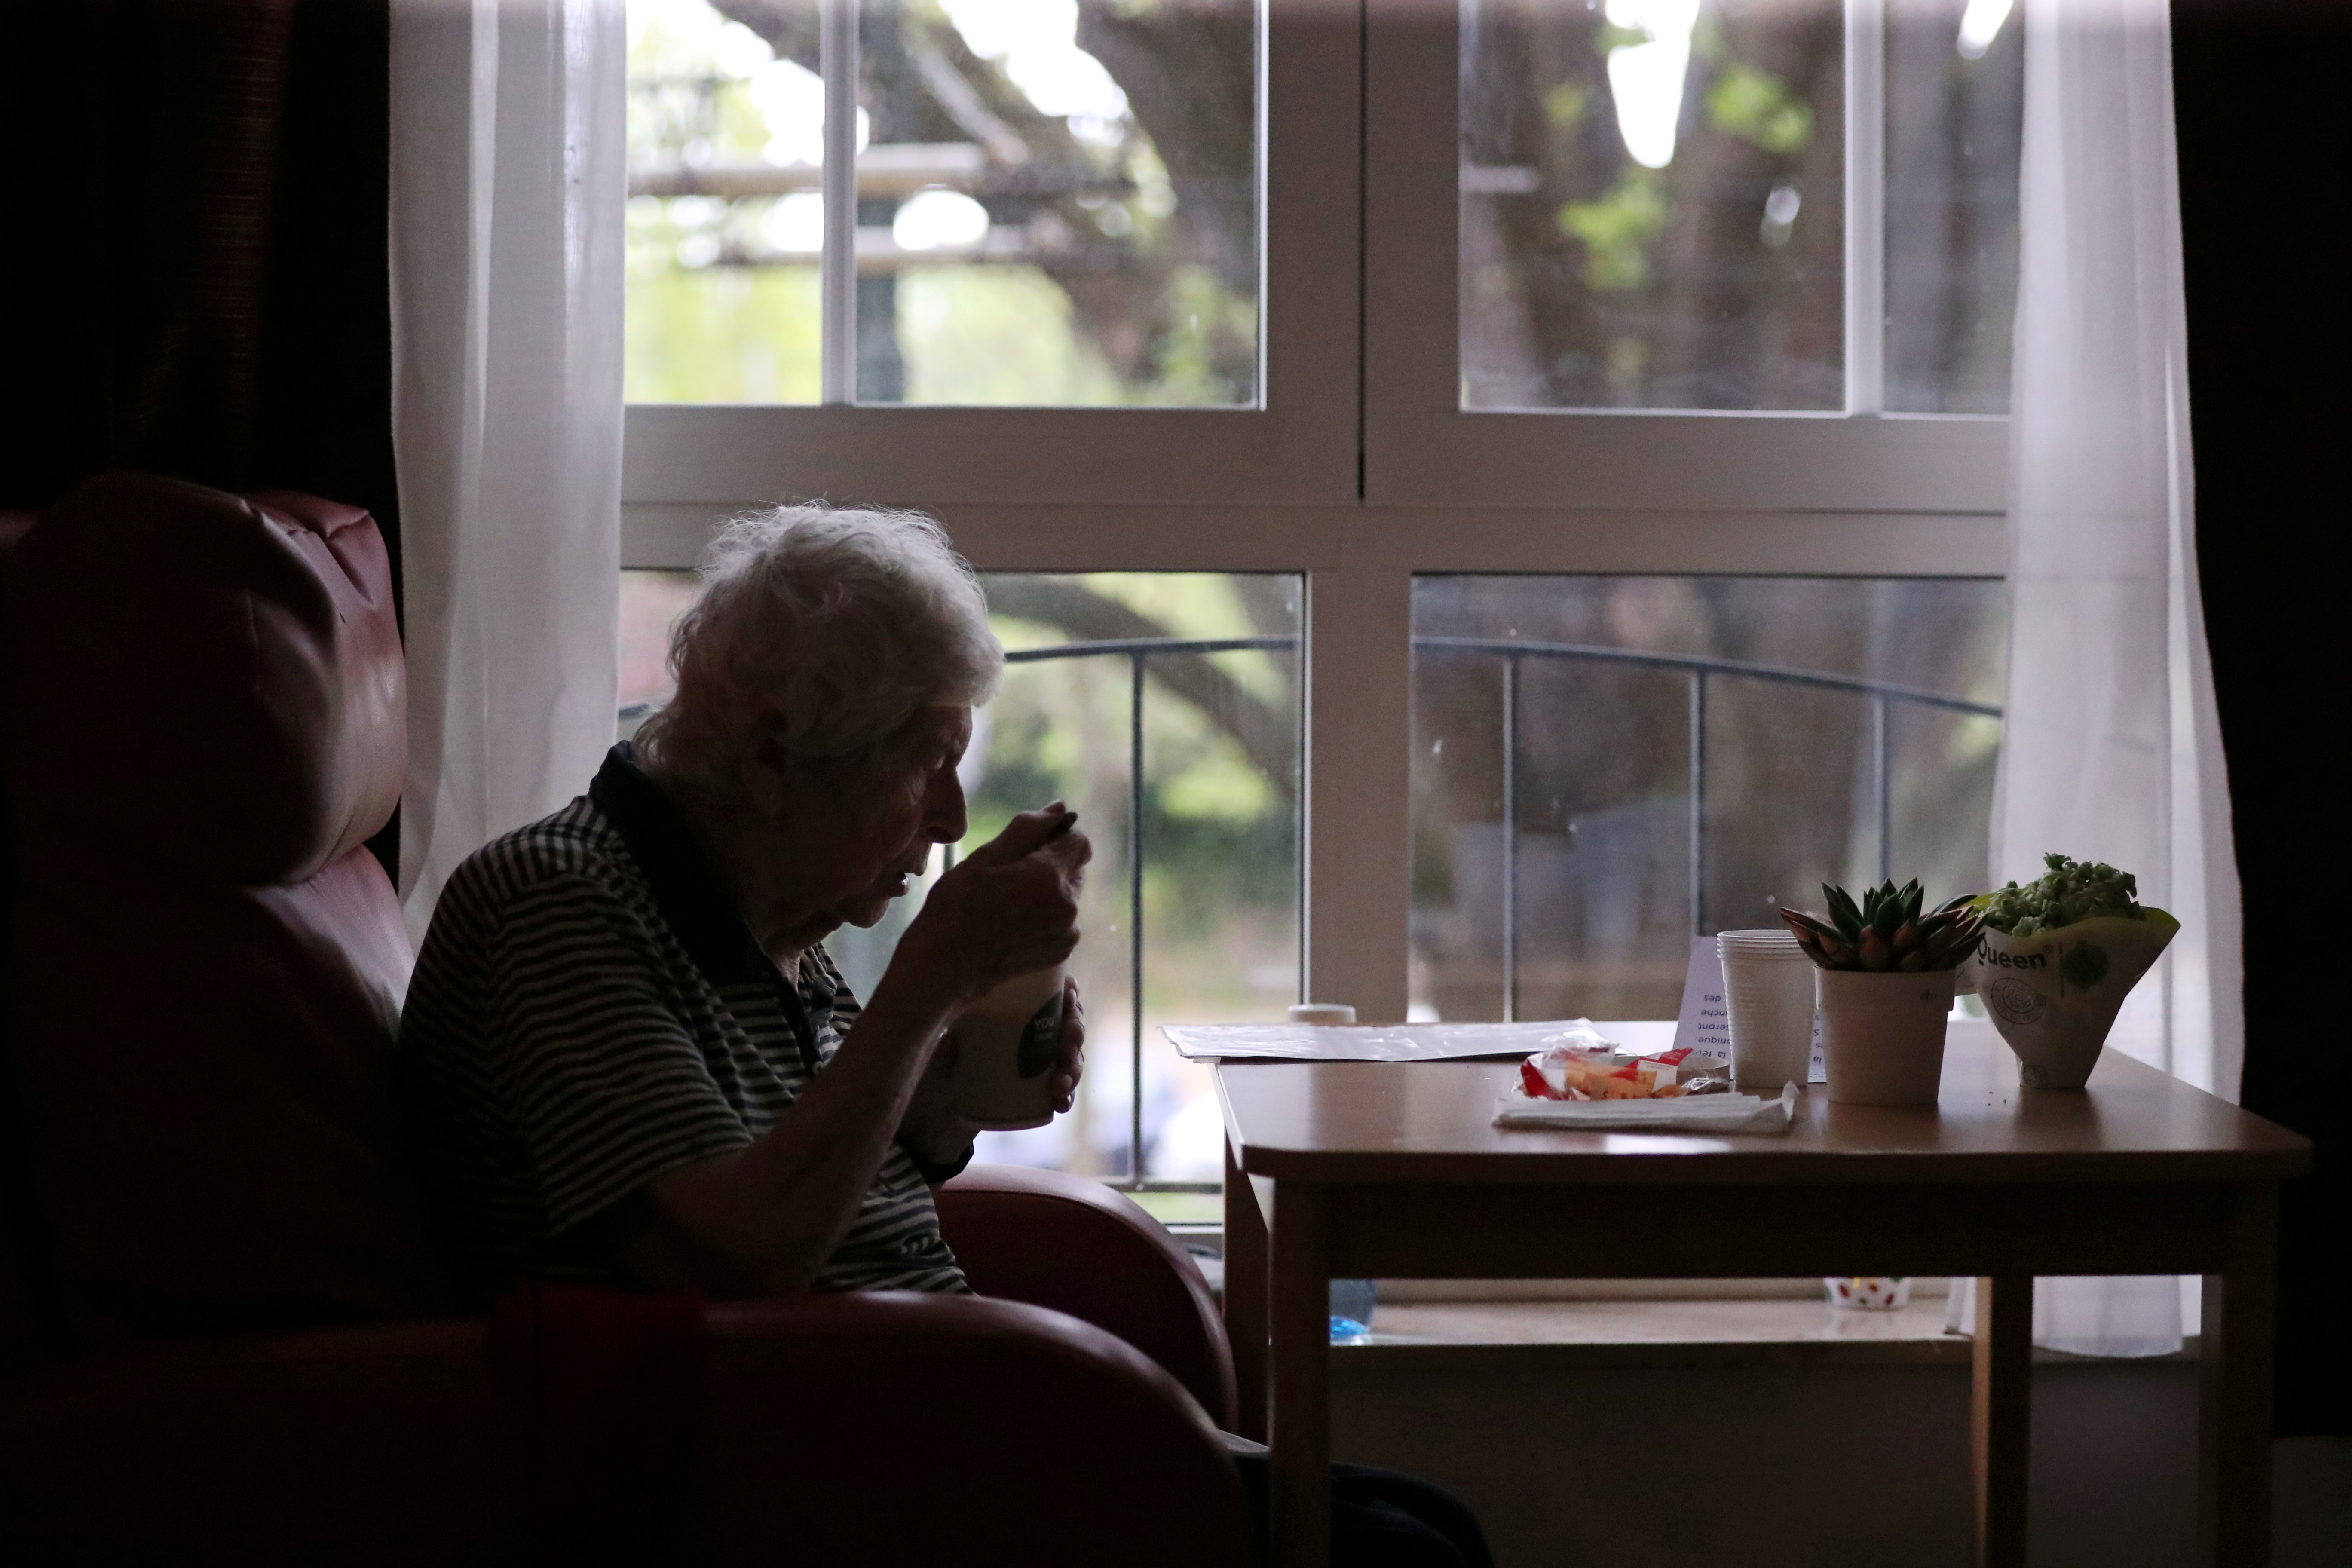 A resident eats in a room at the house for elderly Residence Christalain during coronavirus disease (COVID-19) outbreak, in the Brussels commune of Jette, Belgium April 13, 2020. REUTERS/Yves Herman/File Photo